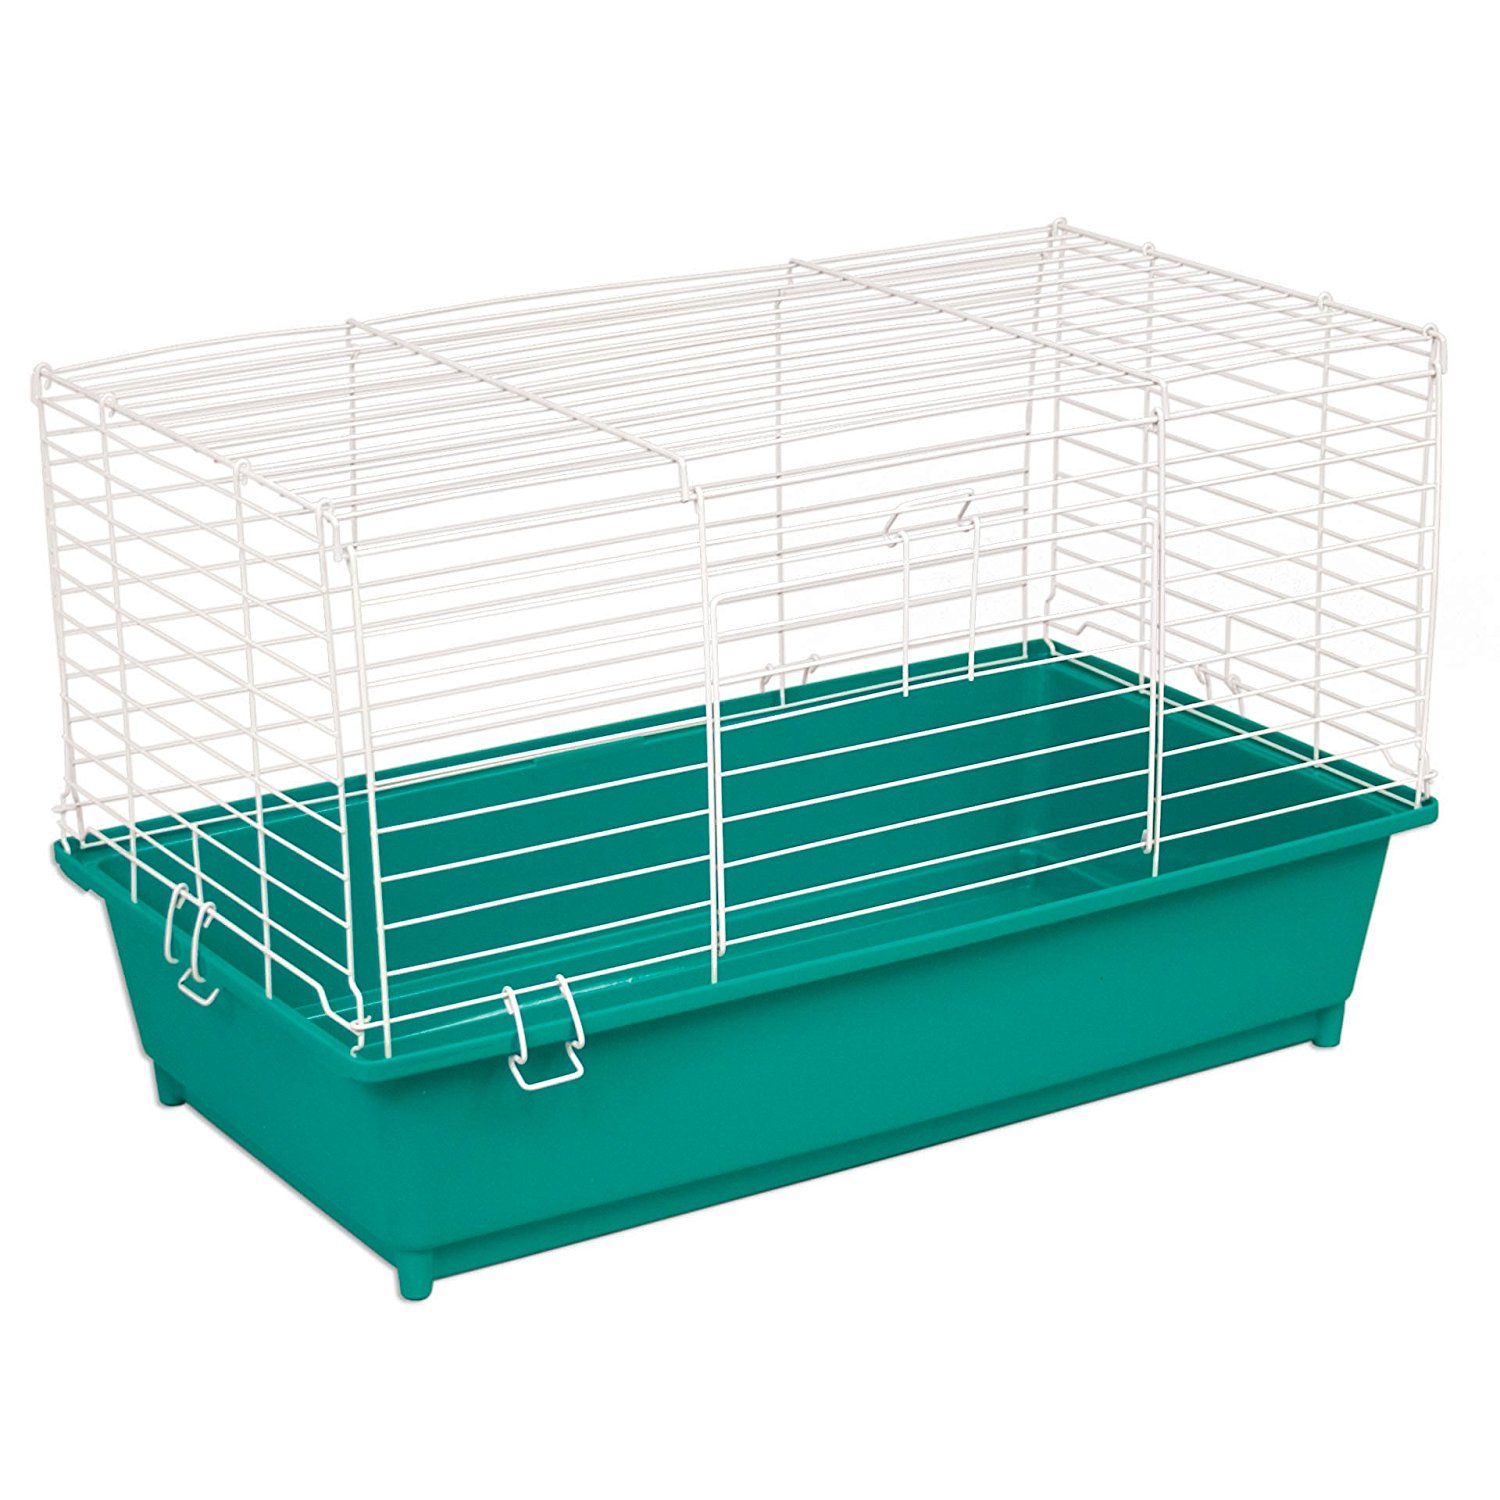 Home Sweet Home Pet Cage for Small Animals - Colors may vary, LM Products vary Size 8Panel Playpen Wire Sunseed Forever 3Pack Sweet Outdoor Deluxe Pack Story.., By Ware Manufacturing